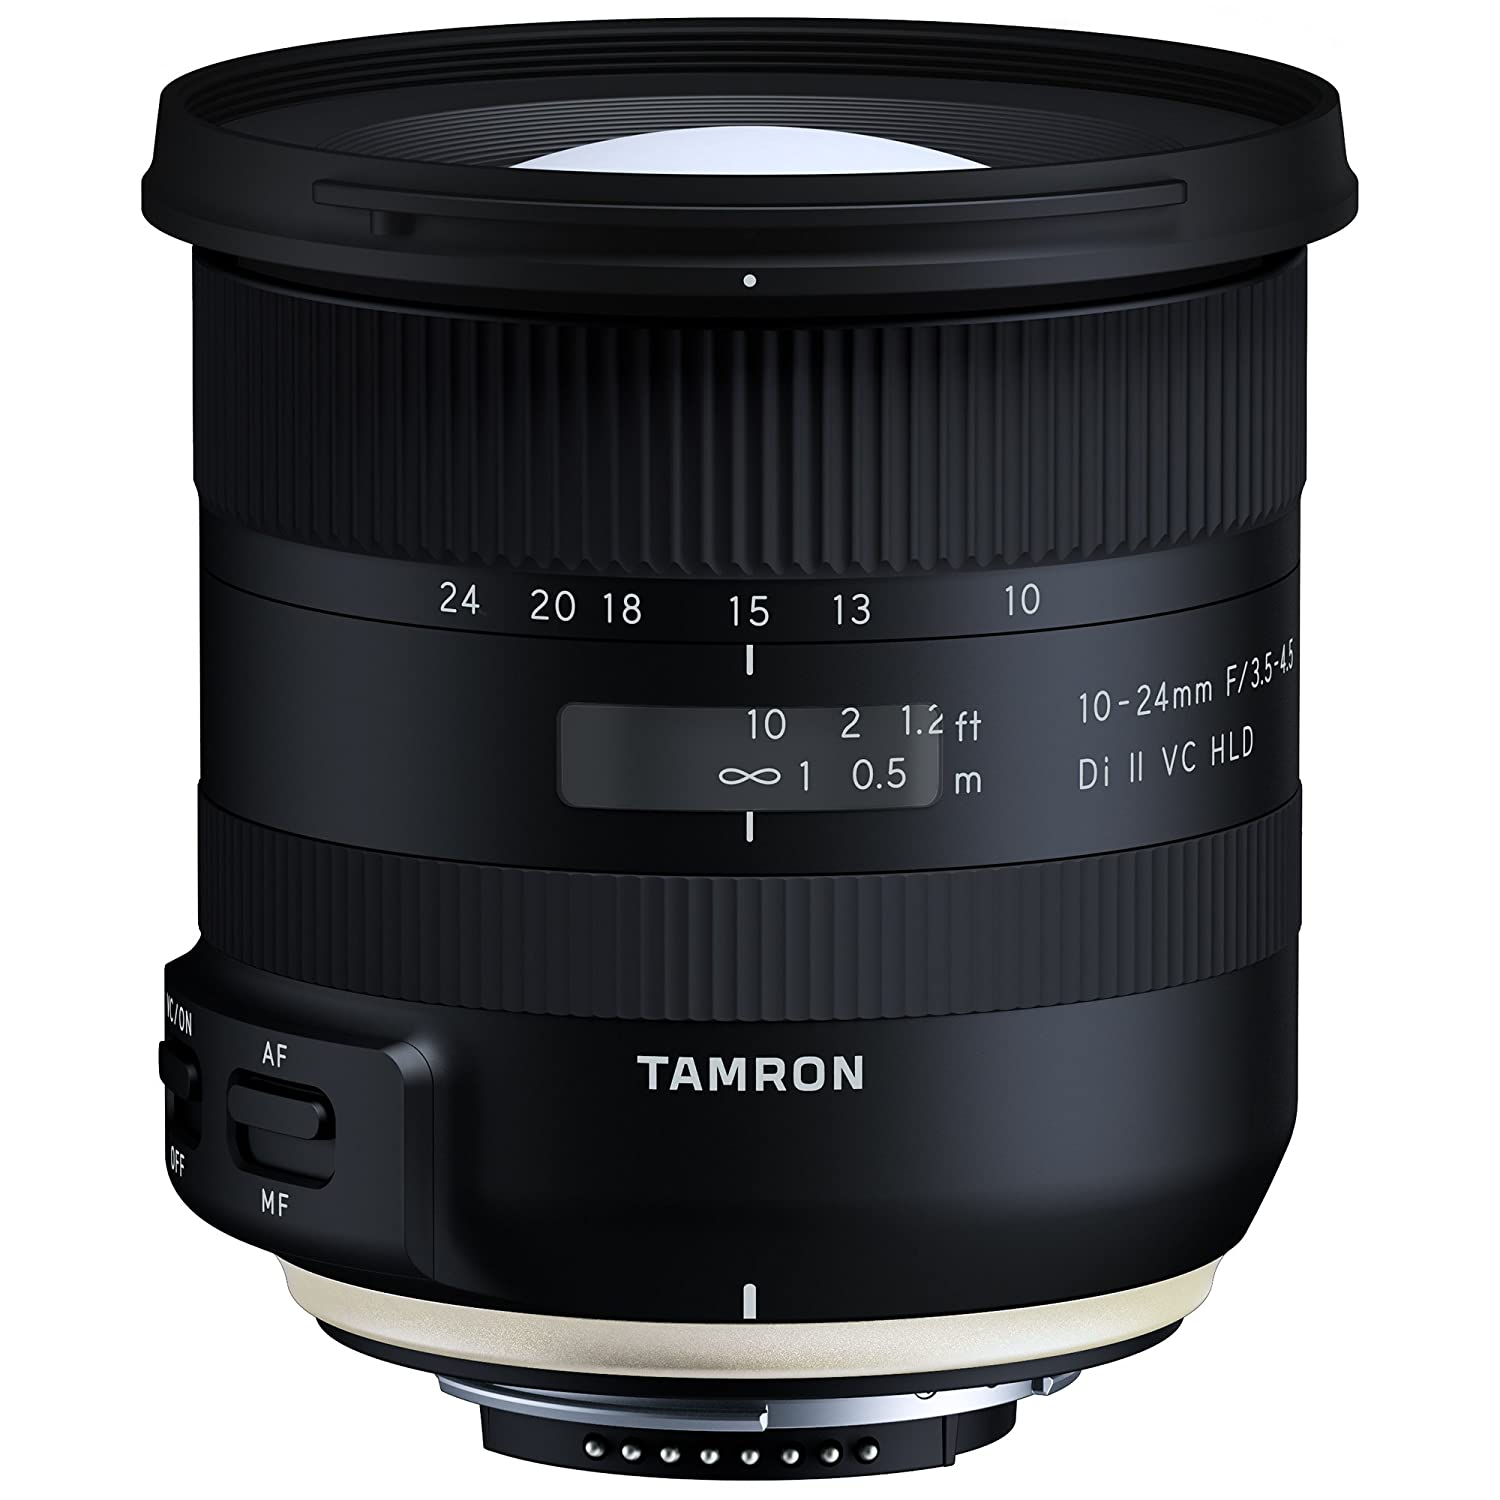 TAMRON 10-24mm F/3.5-4.5 DiII VC HLD Lens for Nikon DSLR Camera